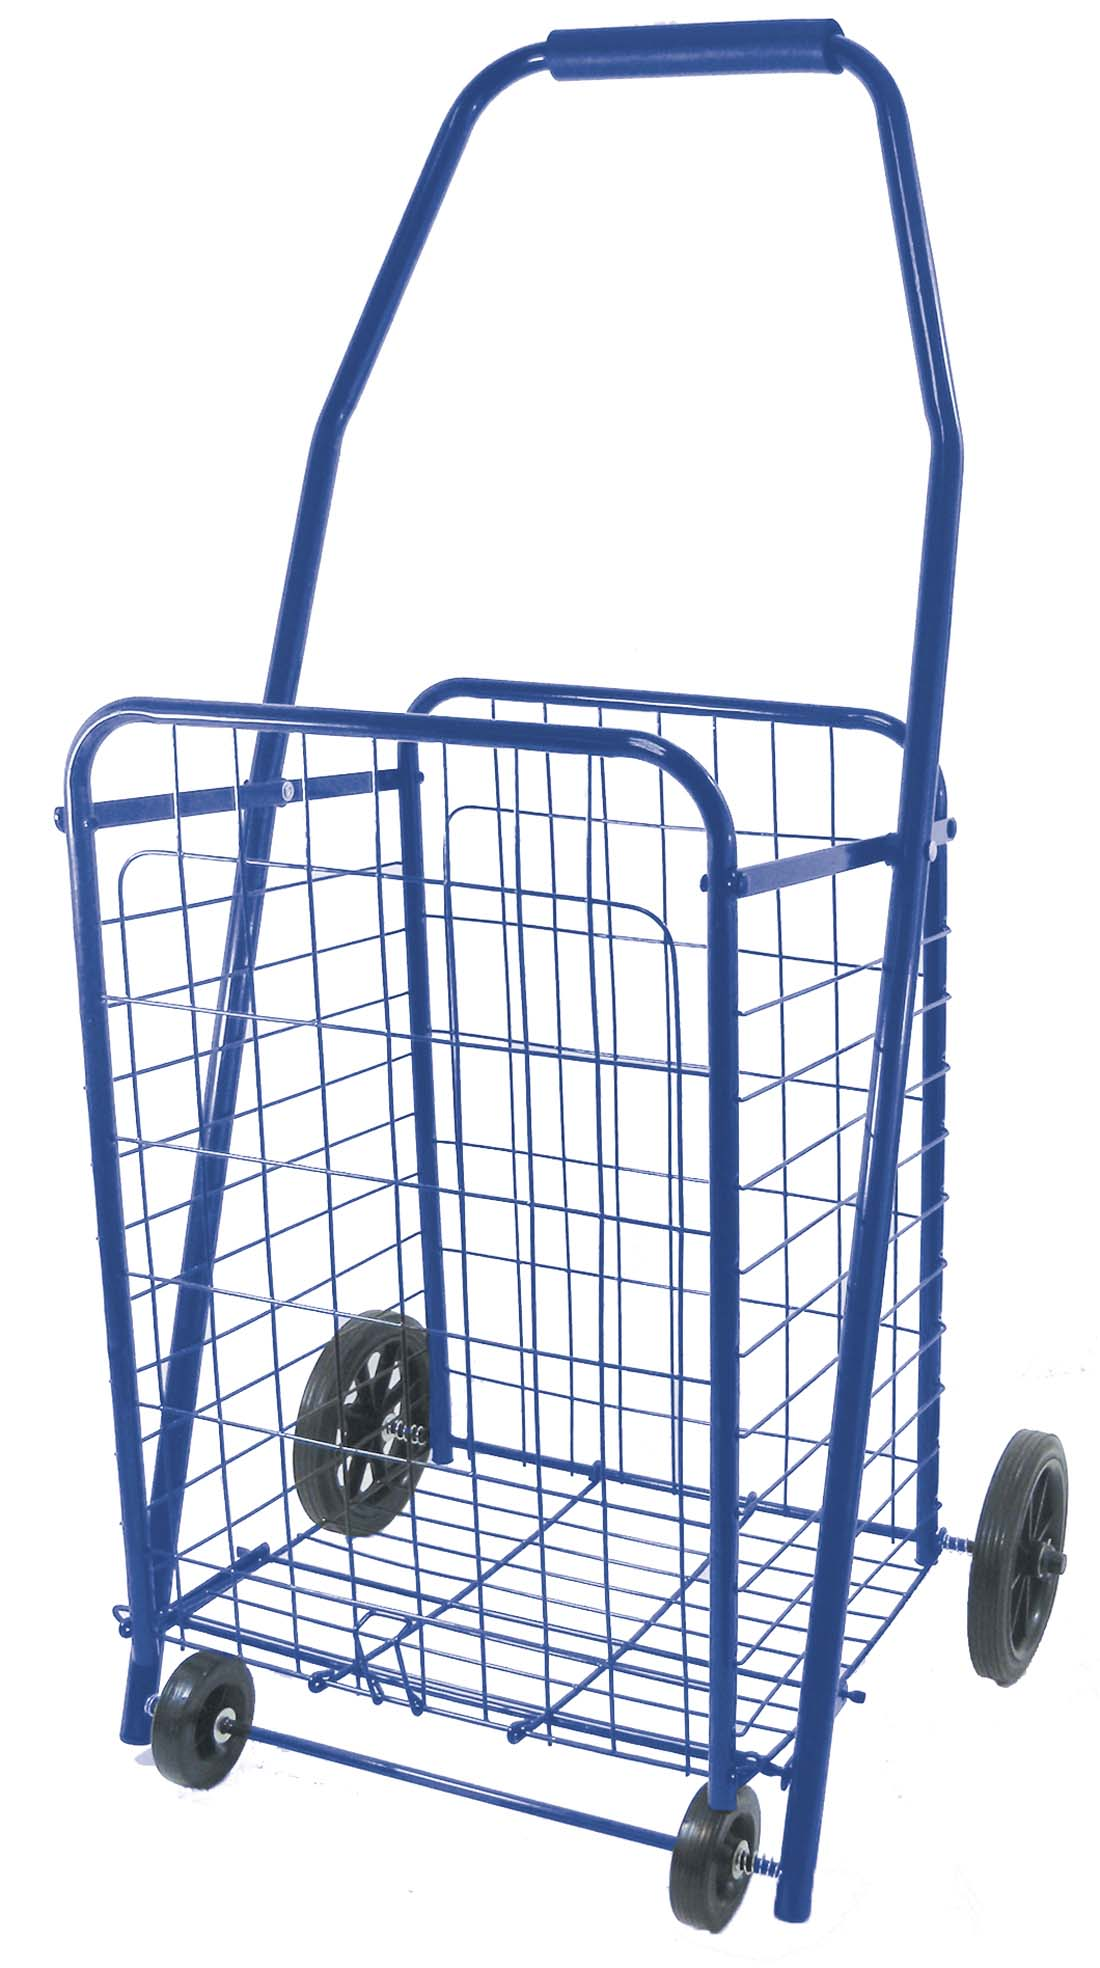 View METAL SHOPPING CART 36 X 20 X 17 INCH WITH 4 WHEELS